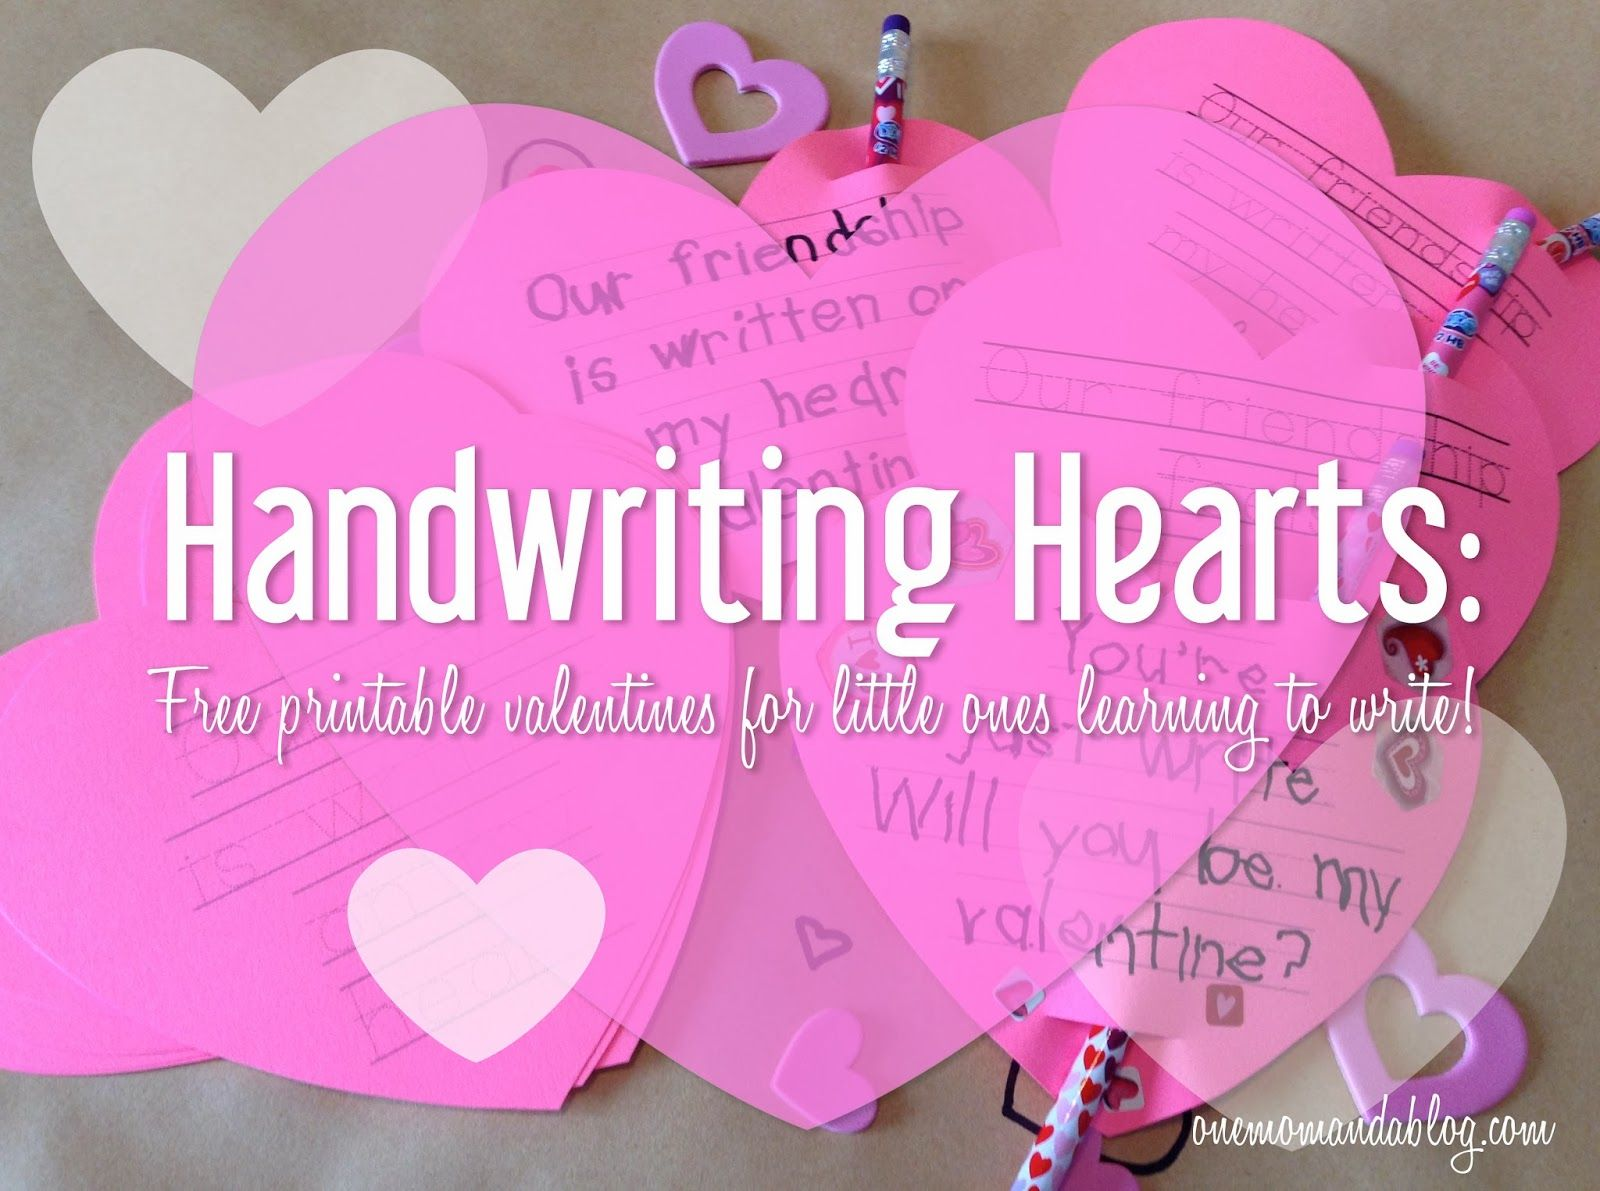 Handwriting Hearts Printable Valentines